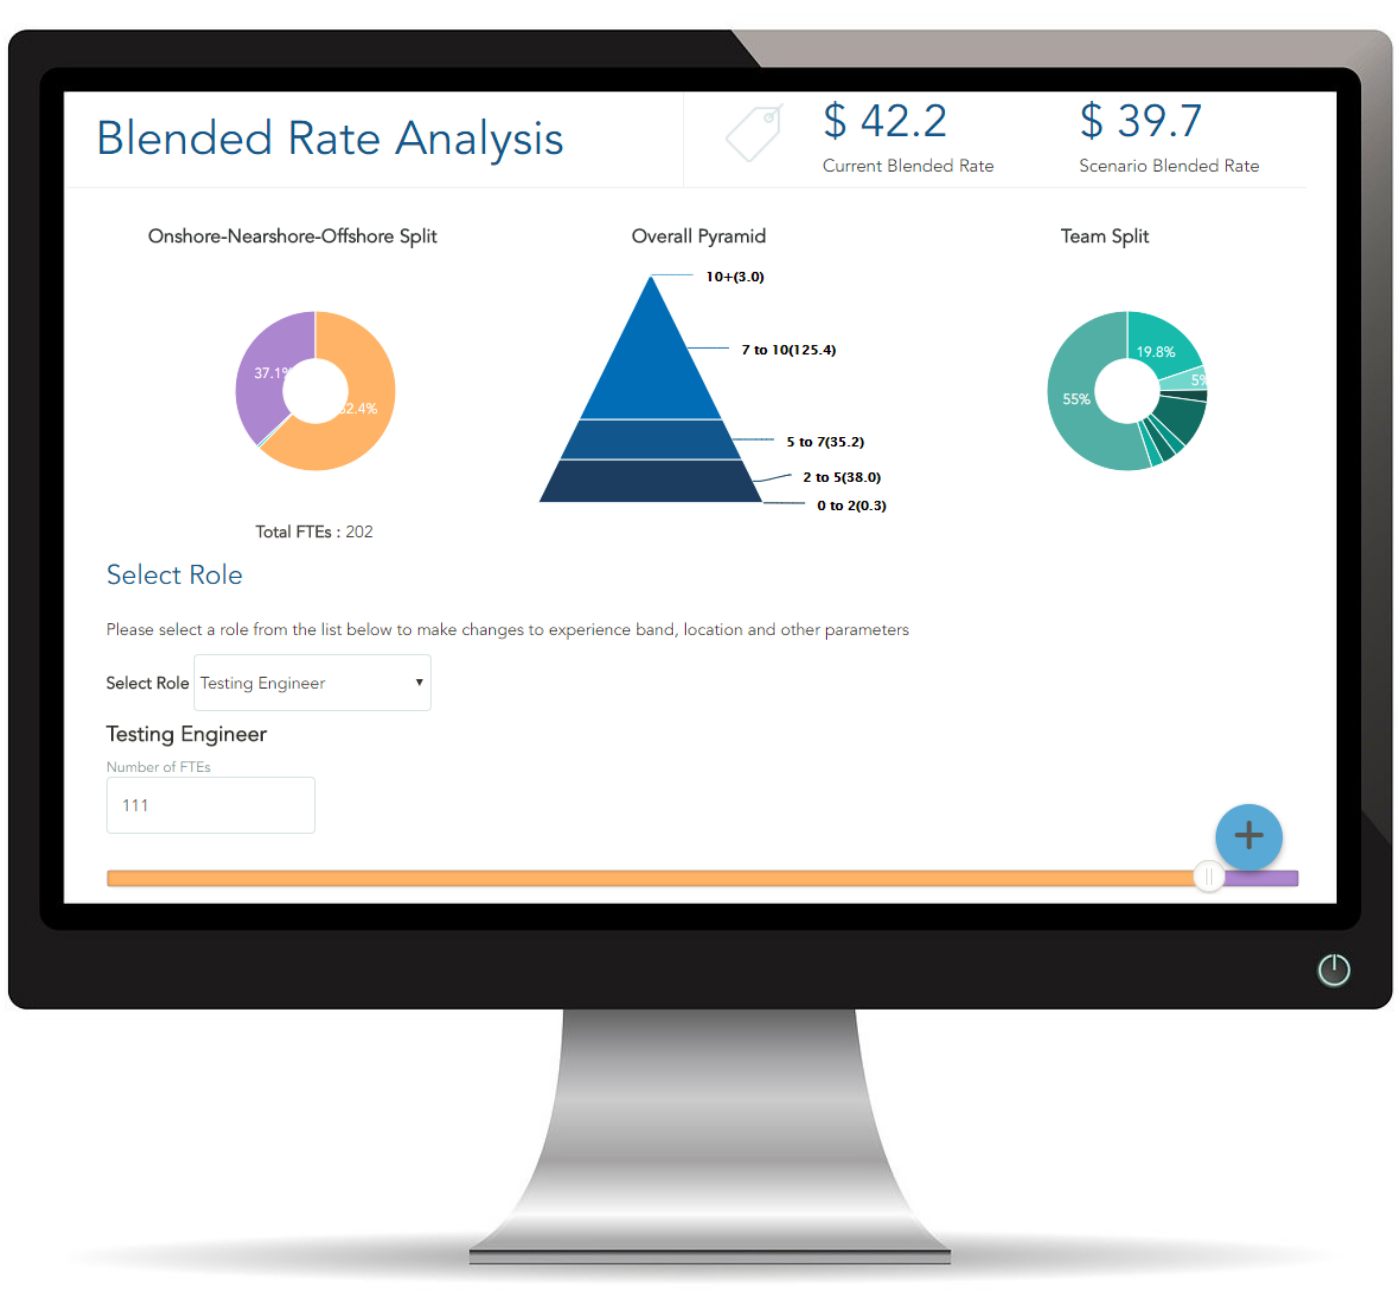 Blended Rate Analysis AvaMark - AvaMark™ IT Price Benchmarking